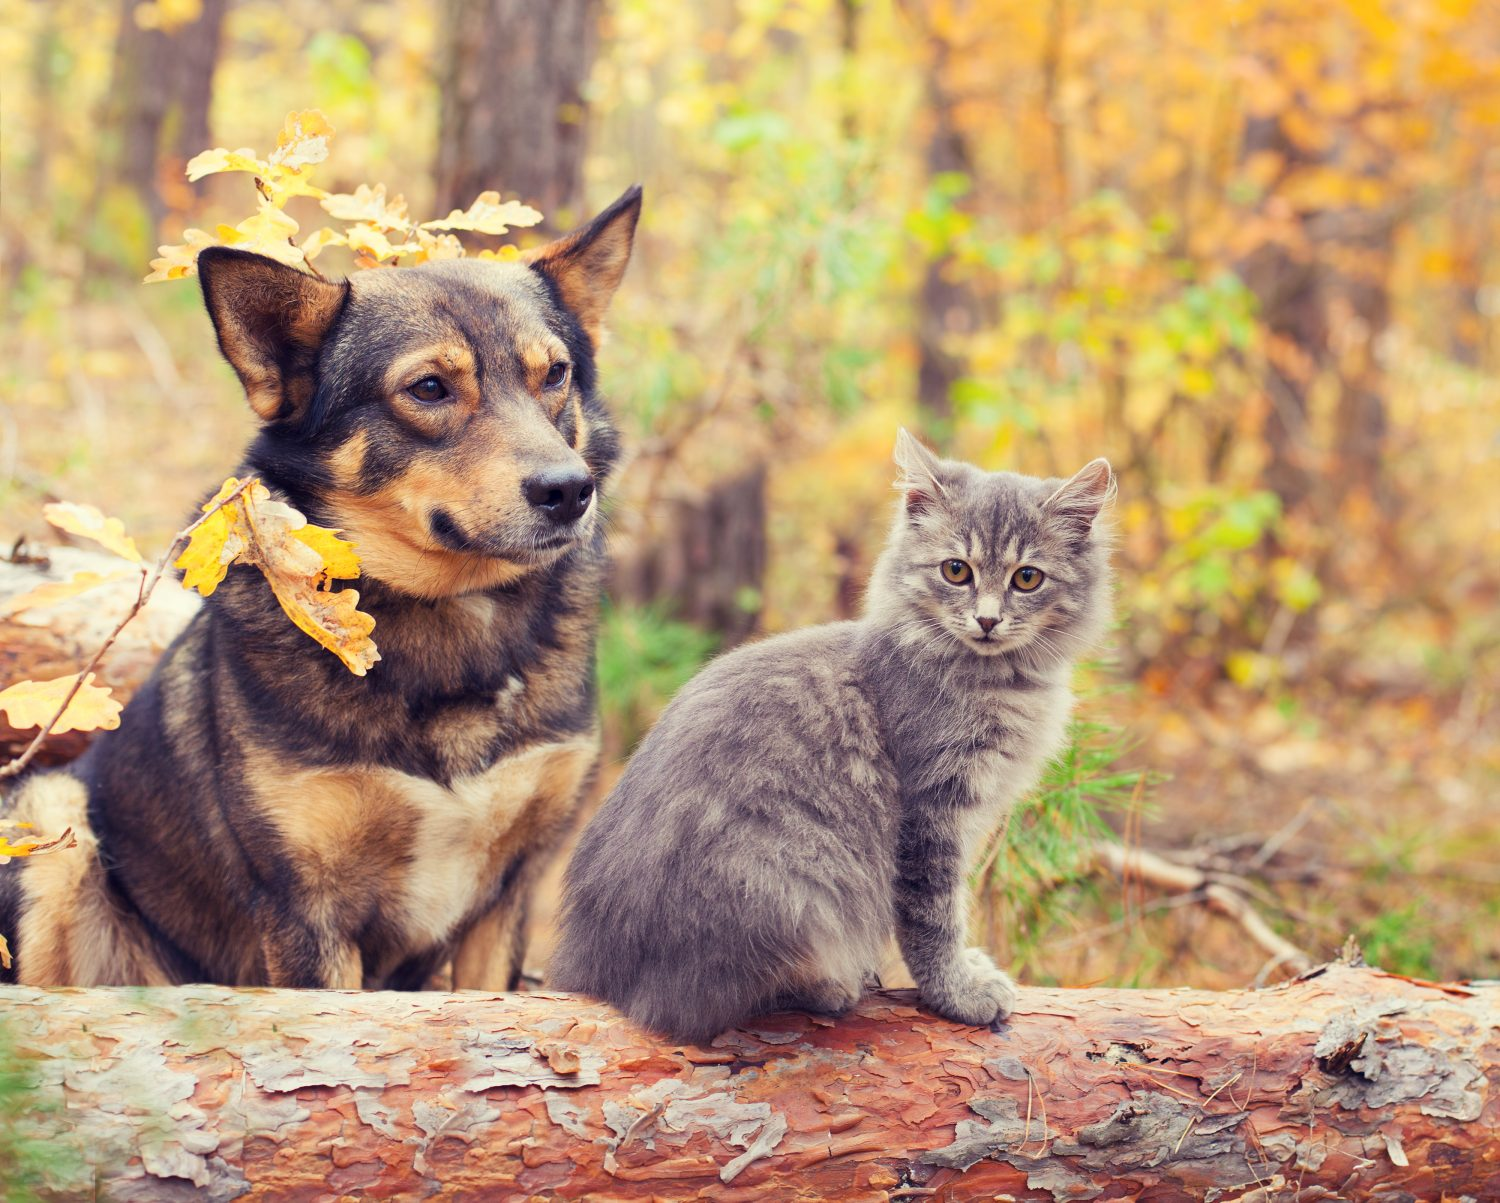 A brown and black dog with a grey cat in the outdoors